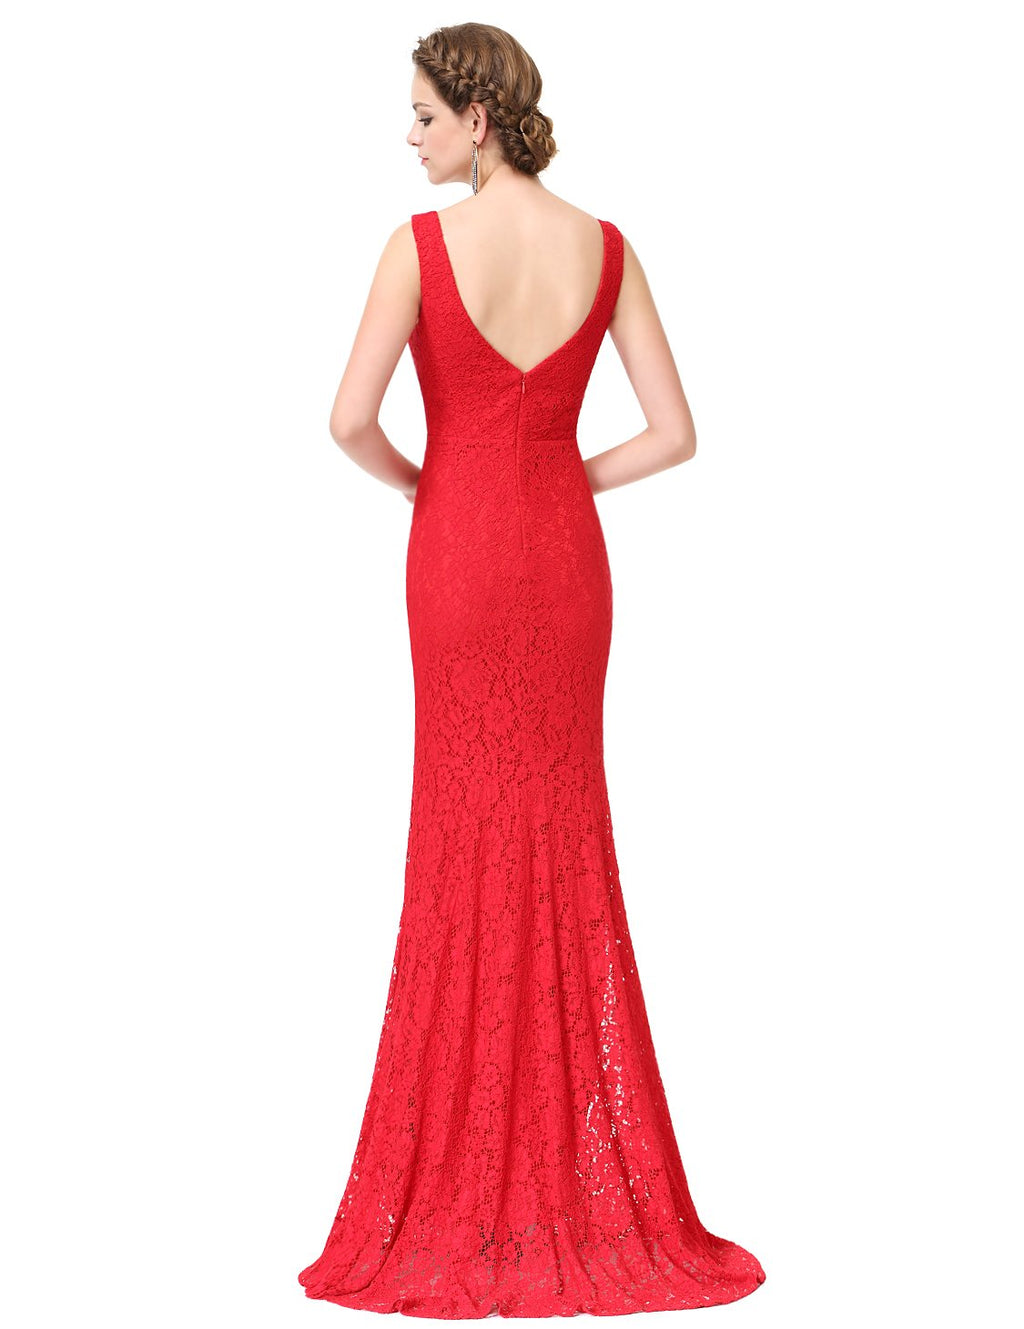 Sexy Fishtail Dress Red